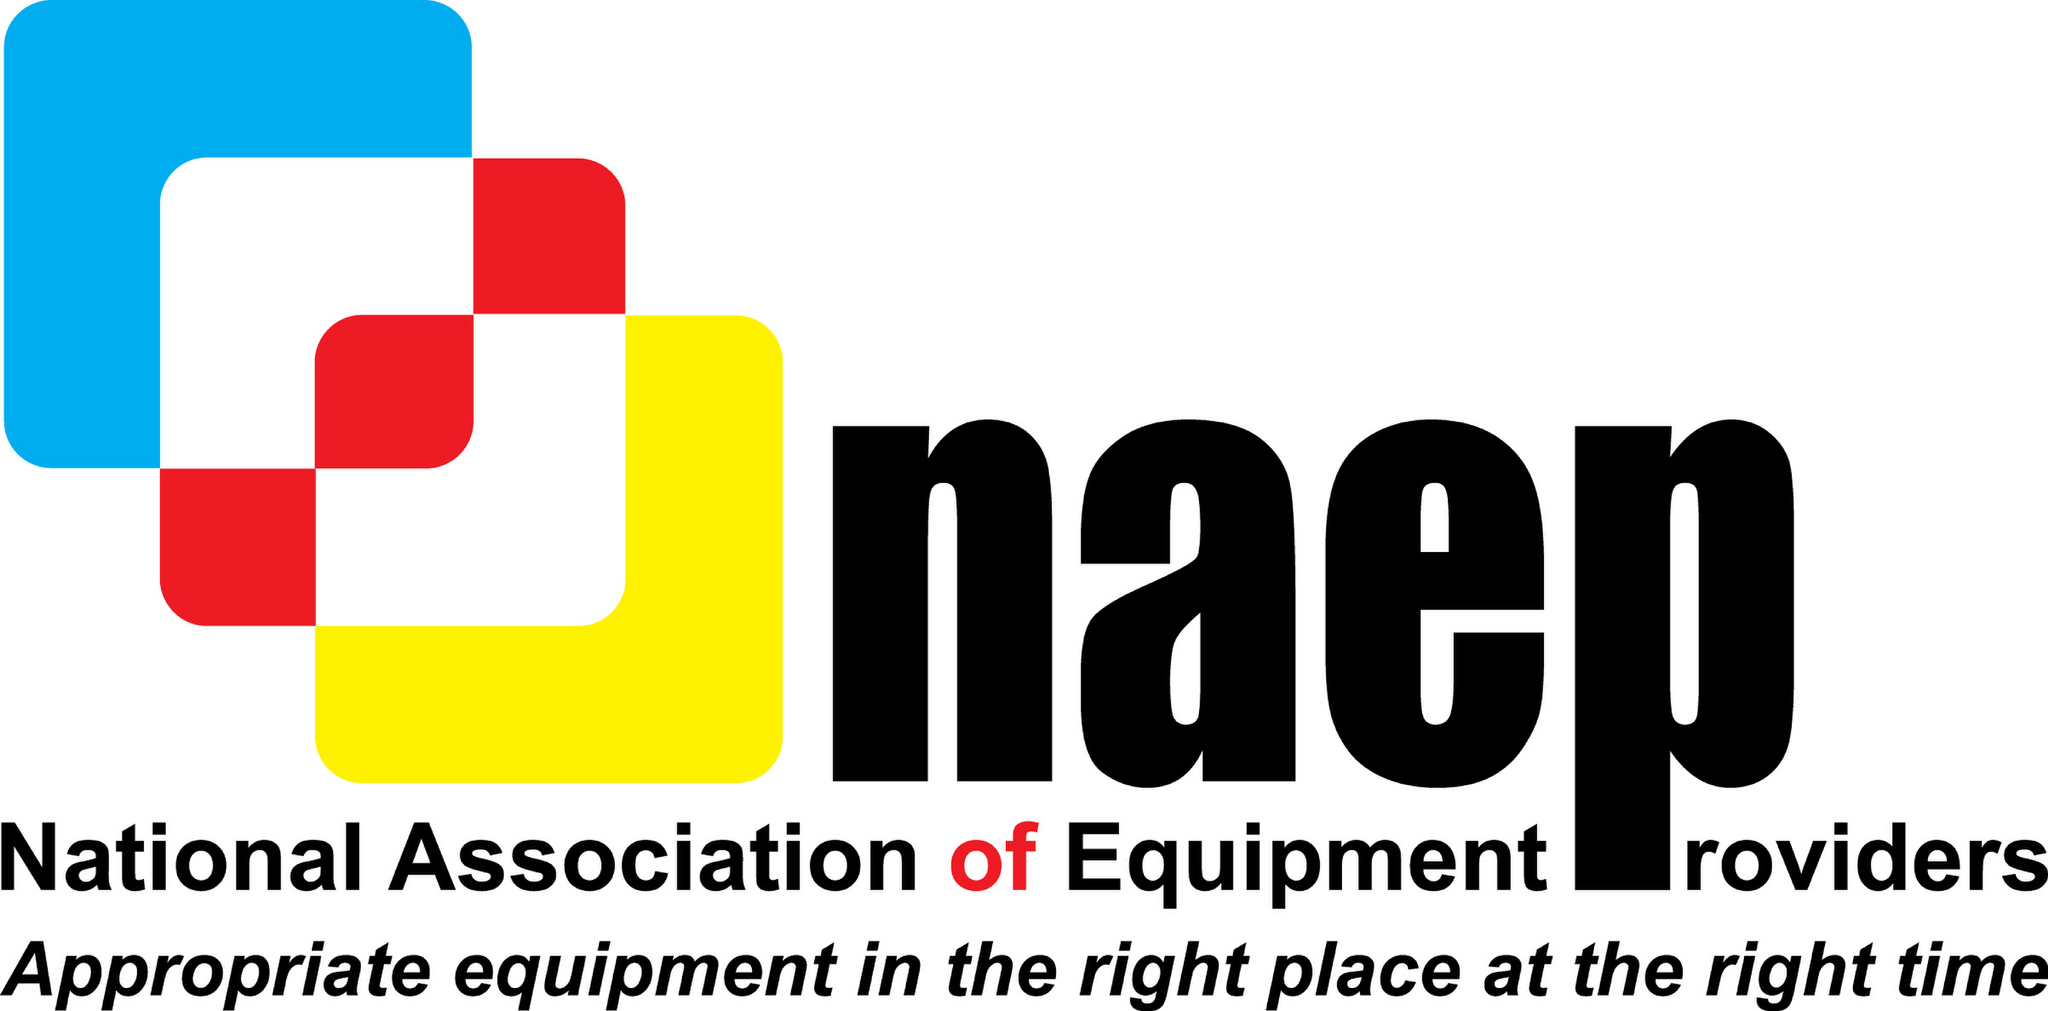 The National Association of Equipment Providers (NAEP)